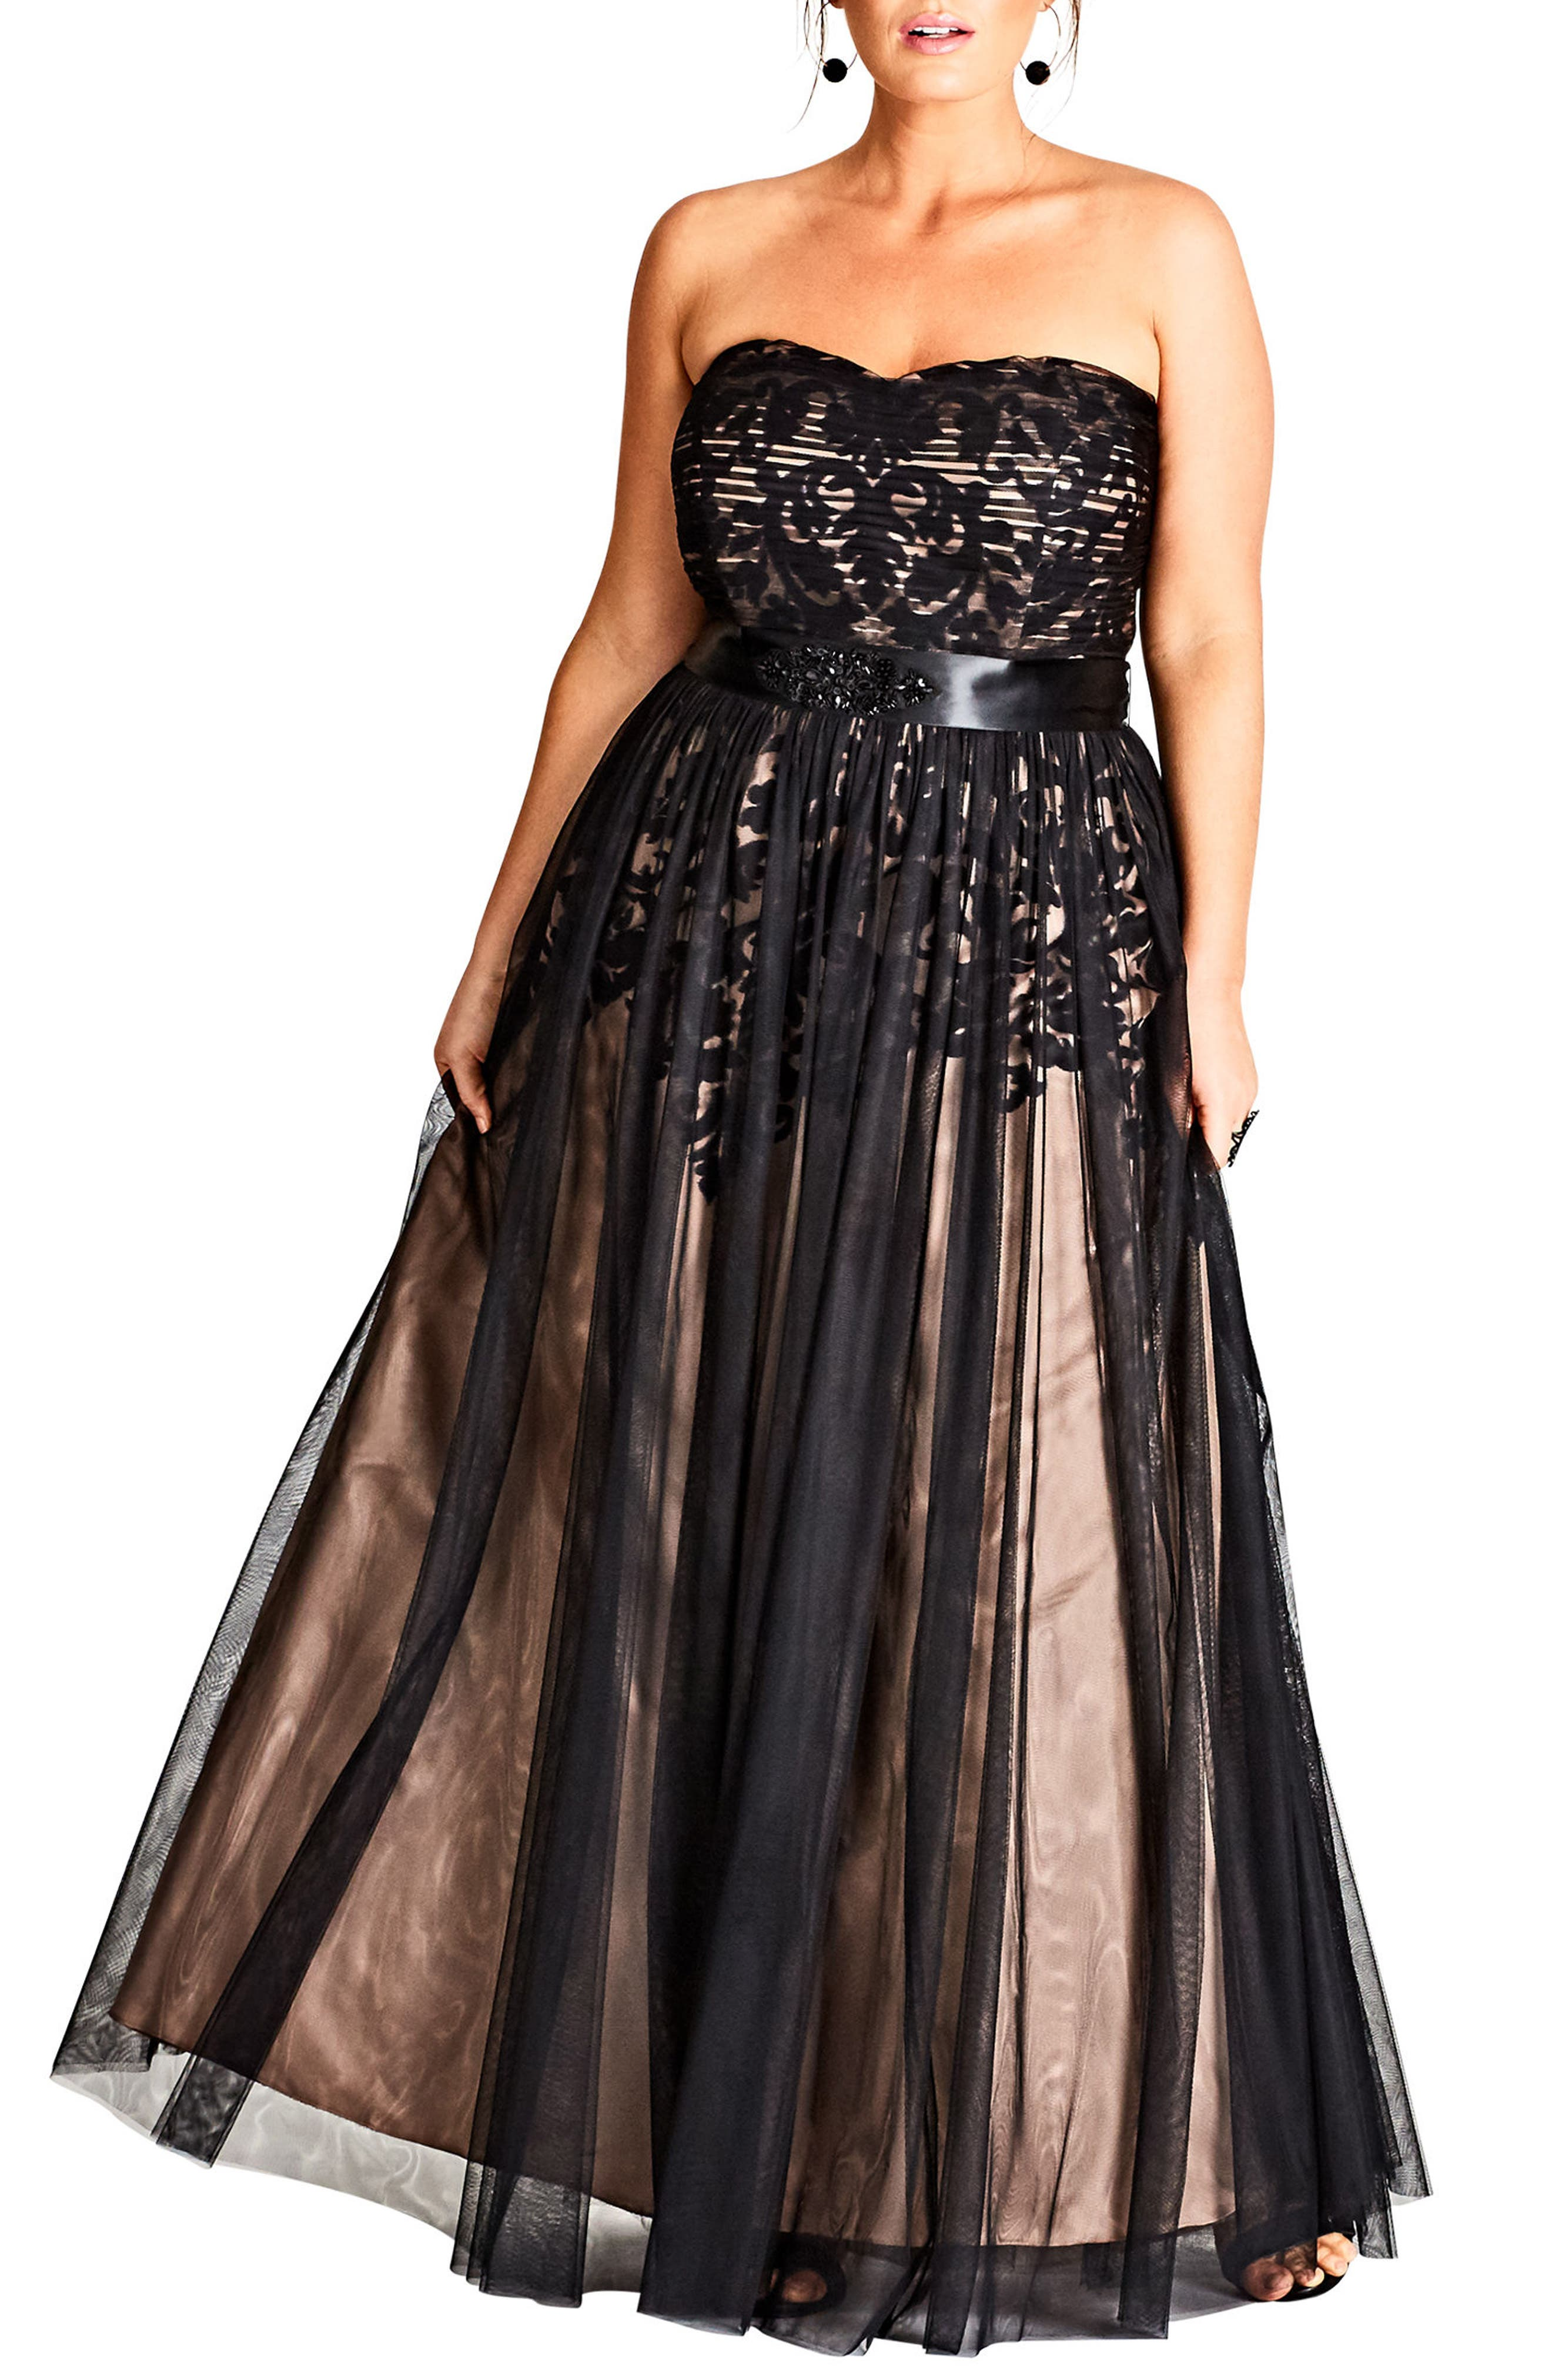 Main Image - City Chic Embellished Tulle Strapless Ballgown (Plus Size)